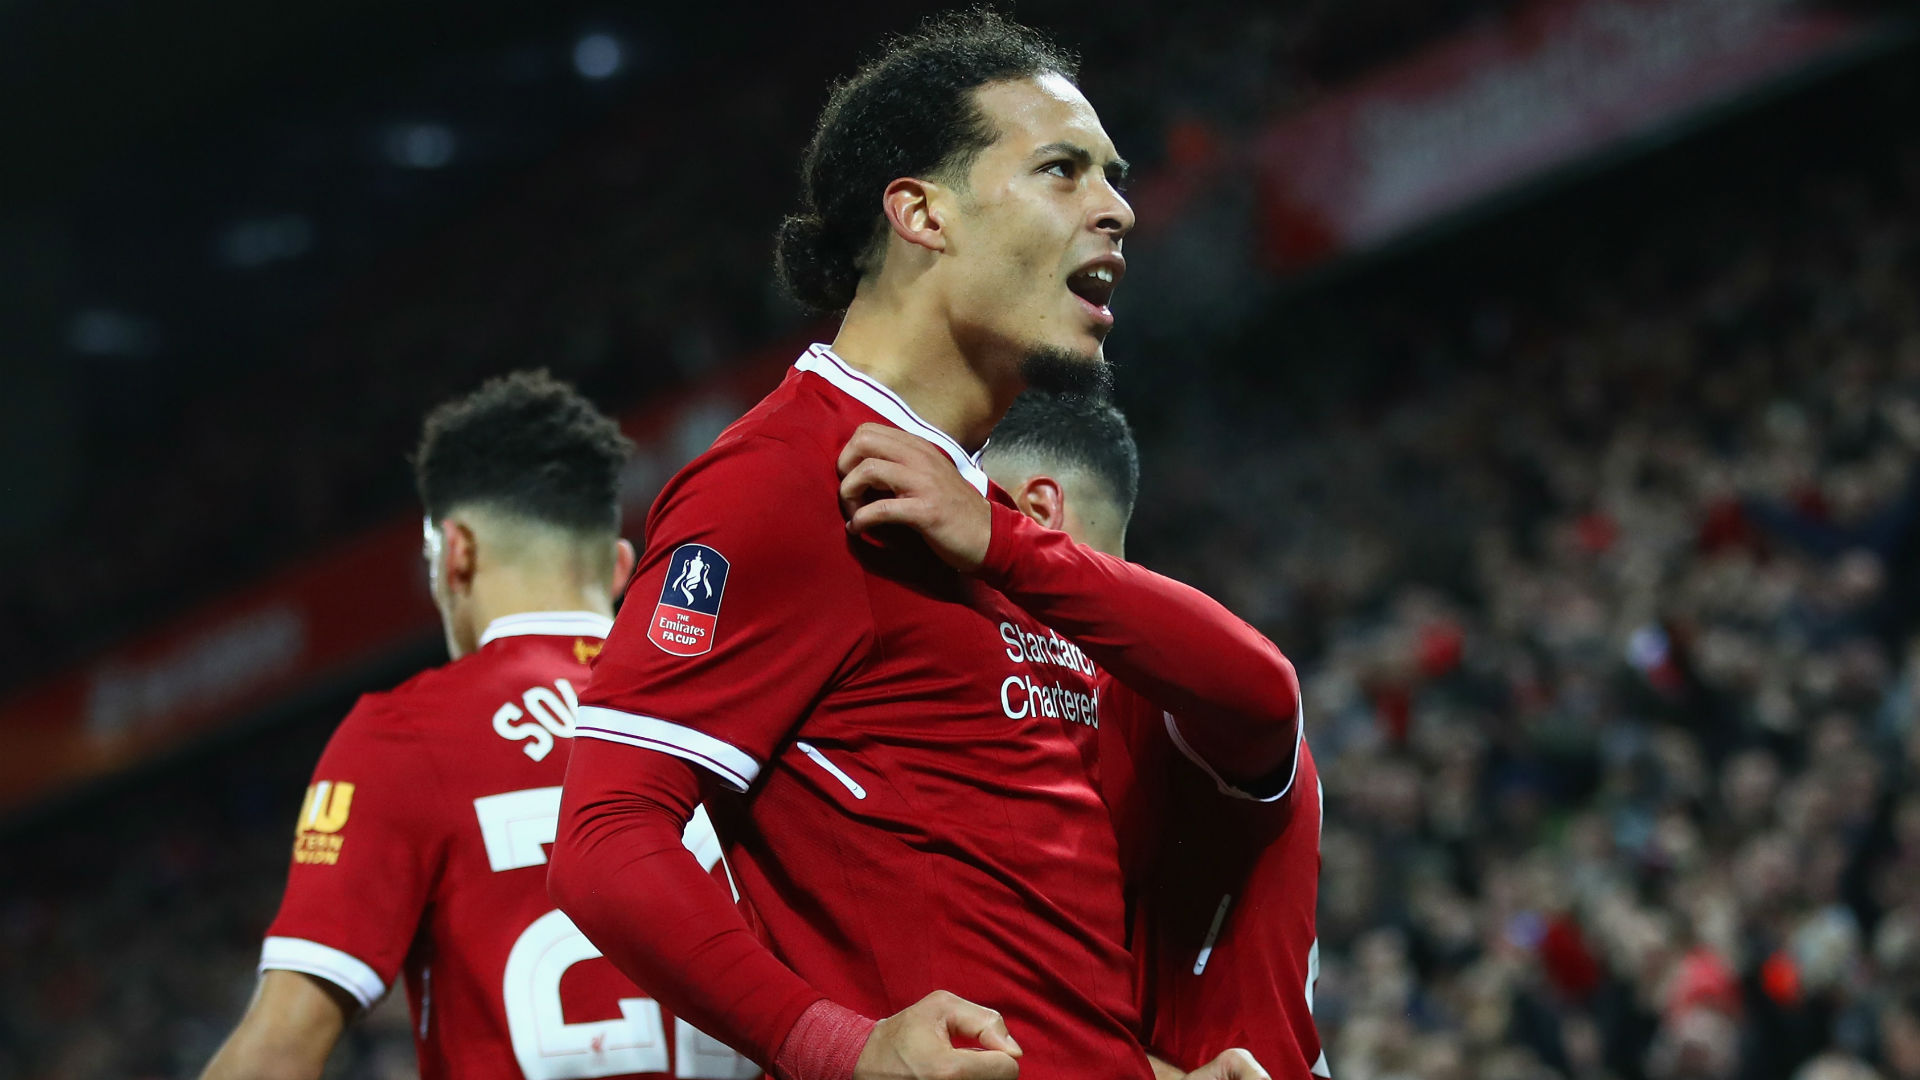 Liverpool defender Van Dijk: £75M fee a big compliment